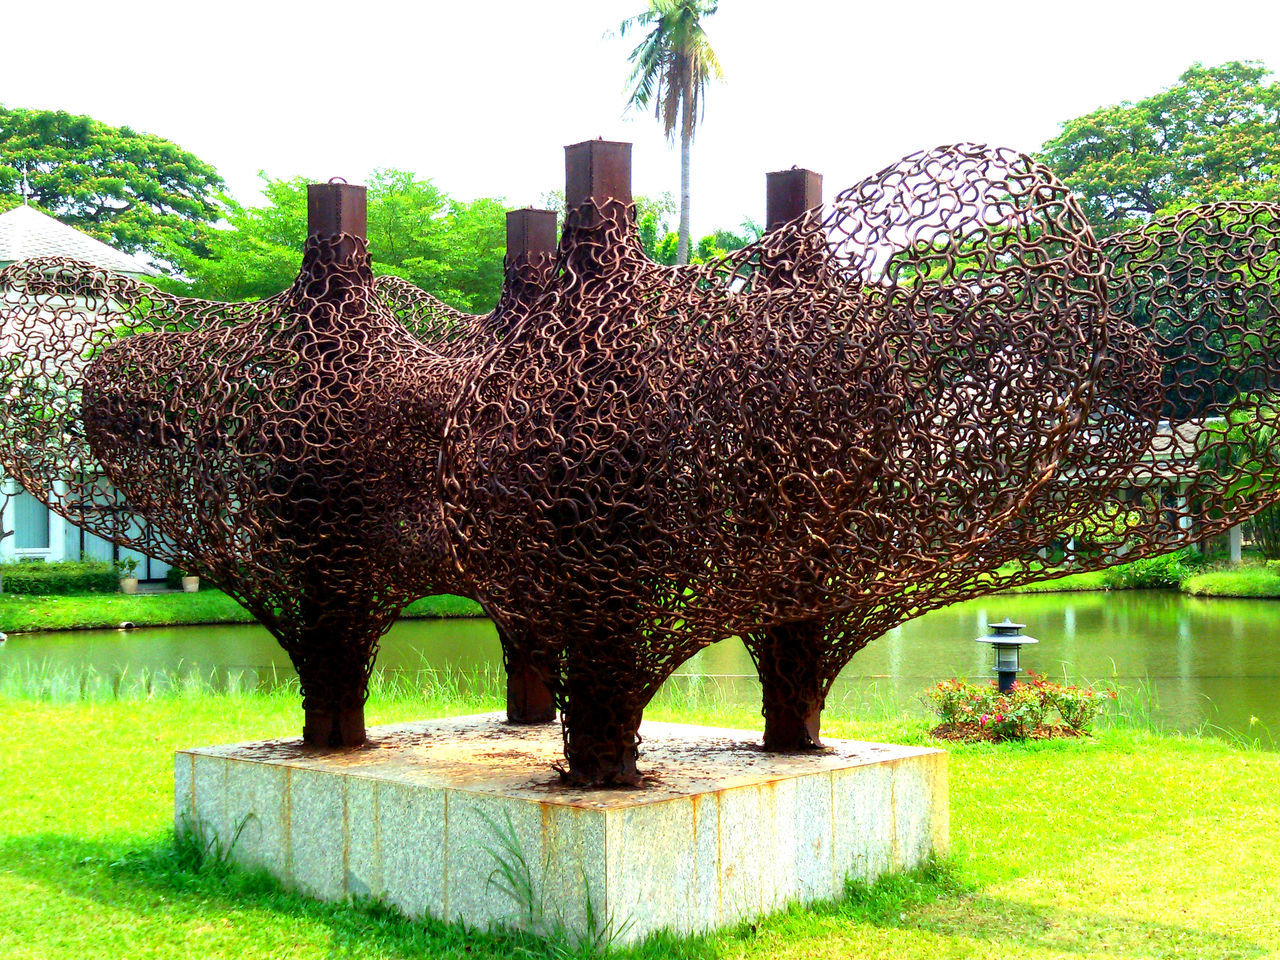 Day Dusty Grass Grassy Green Color Heart Sculpture Statue : Lawn No People Outdoors Park Park - Man Made Space Scenics Tranquil Scene Tranquility Tree Water